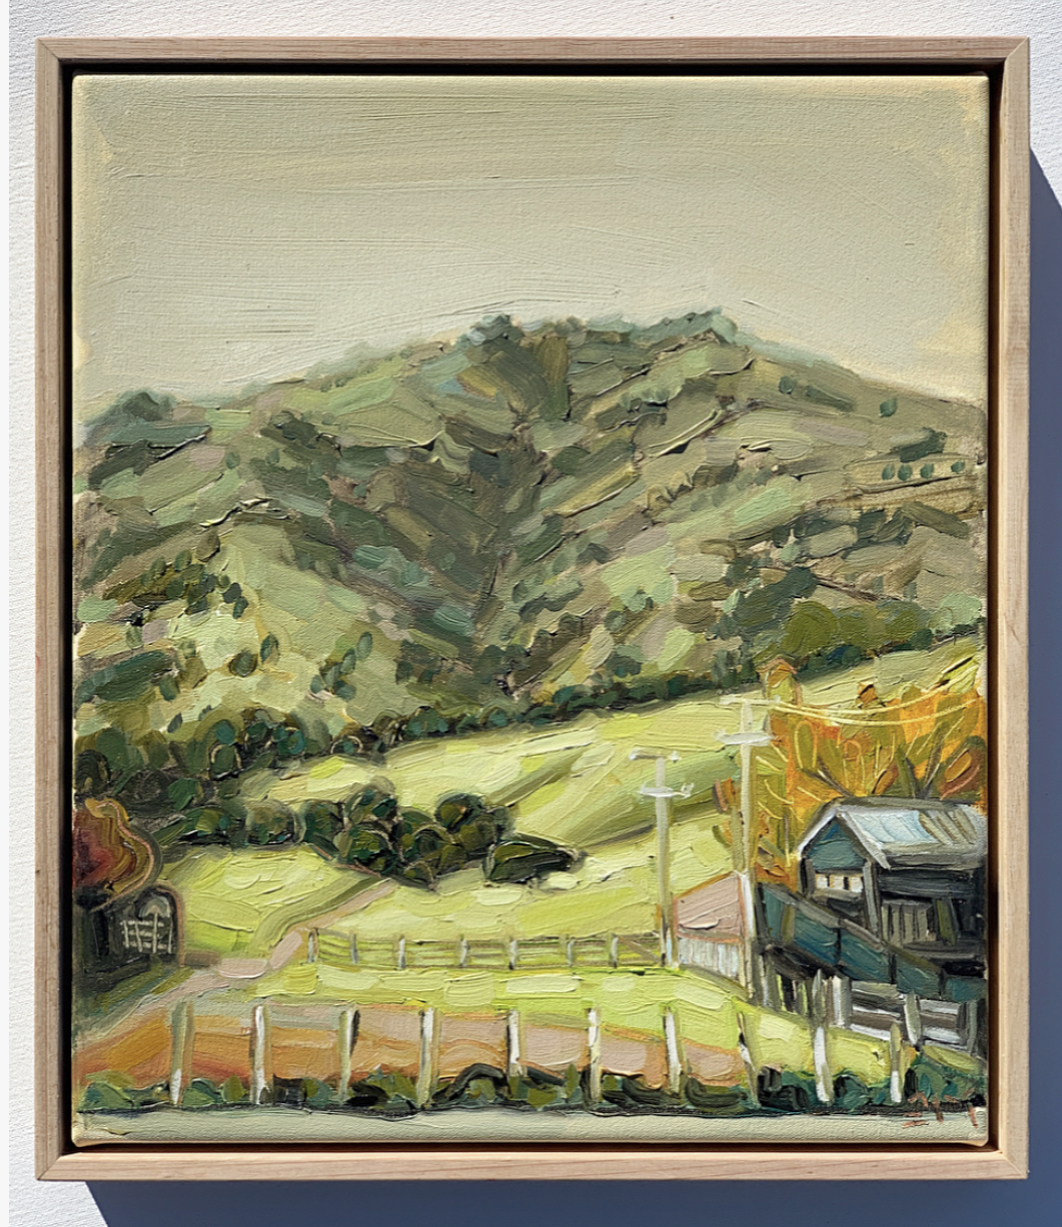 sam michelle 'hills & farming shed' 38x3